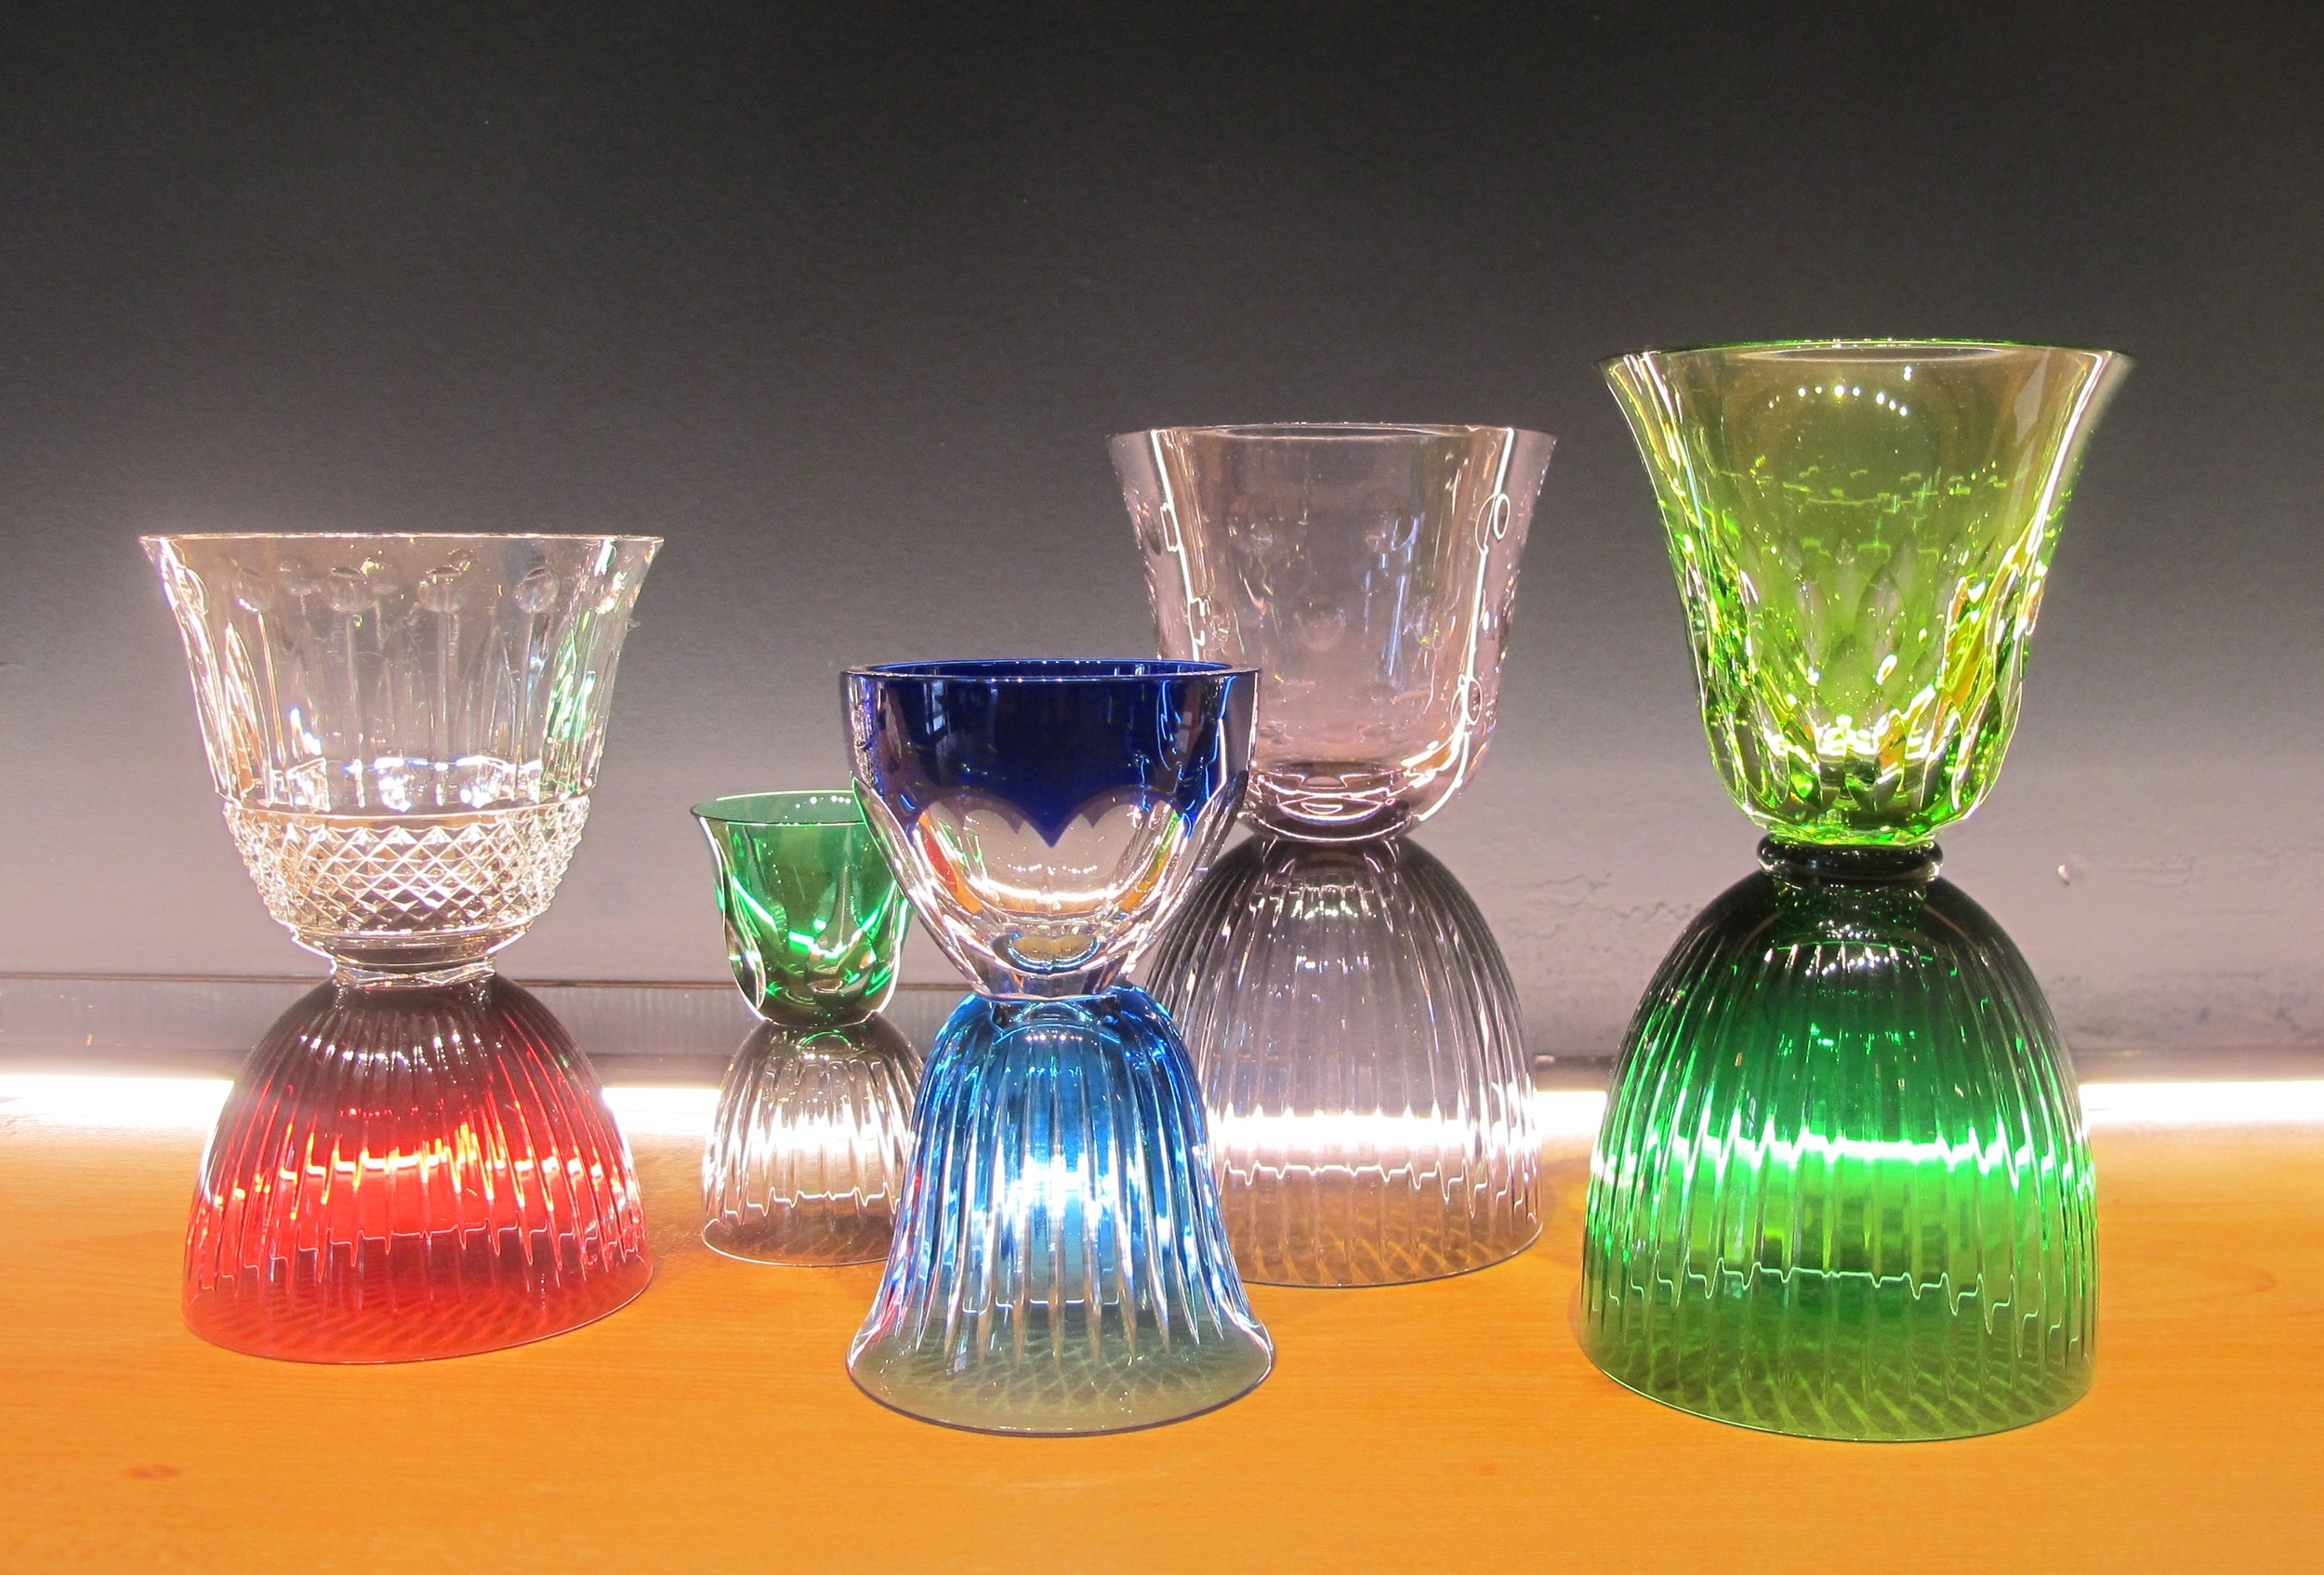 These glasses by Saint-Louis made me want to have an entire collection displayed in my house.